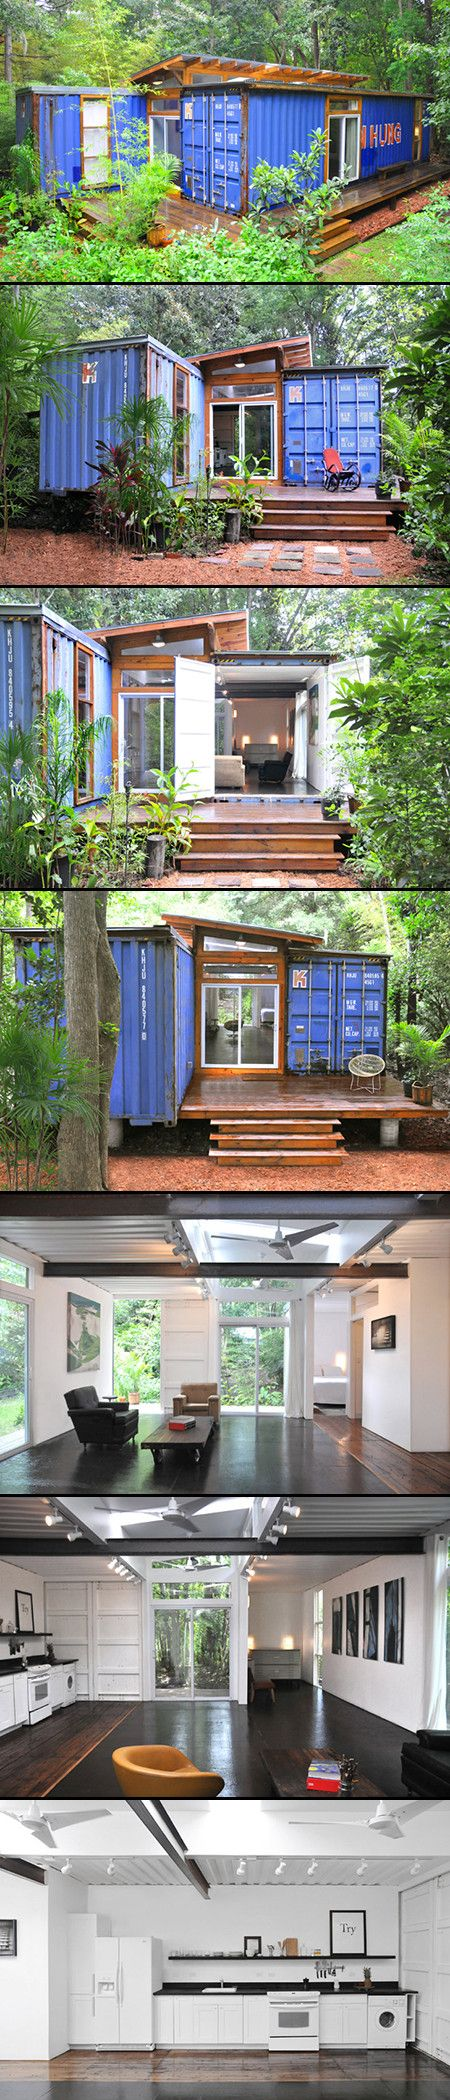 Shipping Container Plans - Want to build a cargo container home like this? Visit here for more info http://howtobuildashippingcontainerhome.blogspot.co.nz/